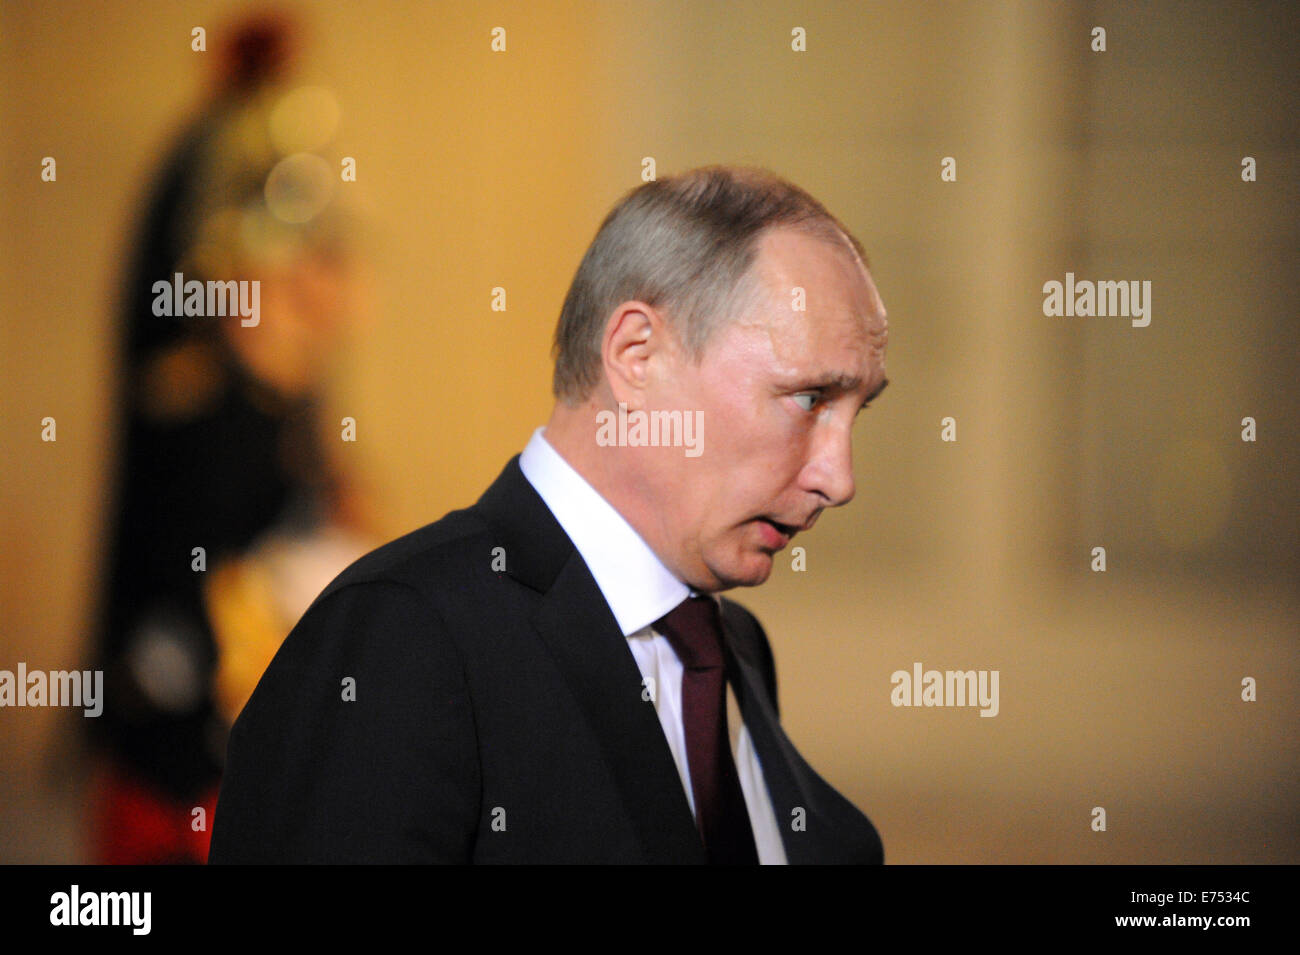 Portrait Of Russian President Vladimir Putin Pictured During His Stock Photo Alamy